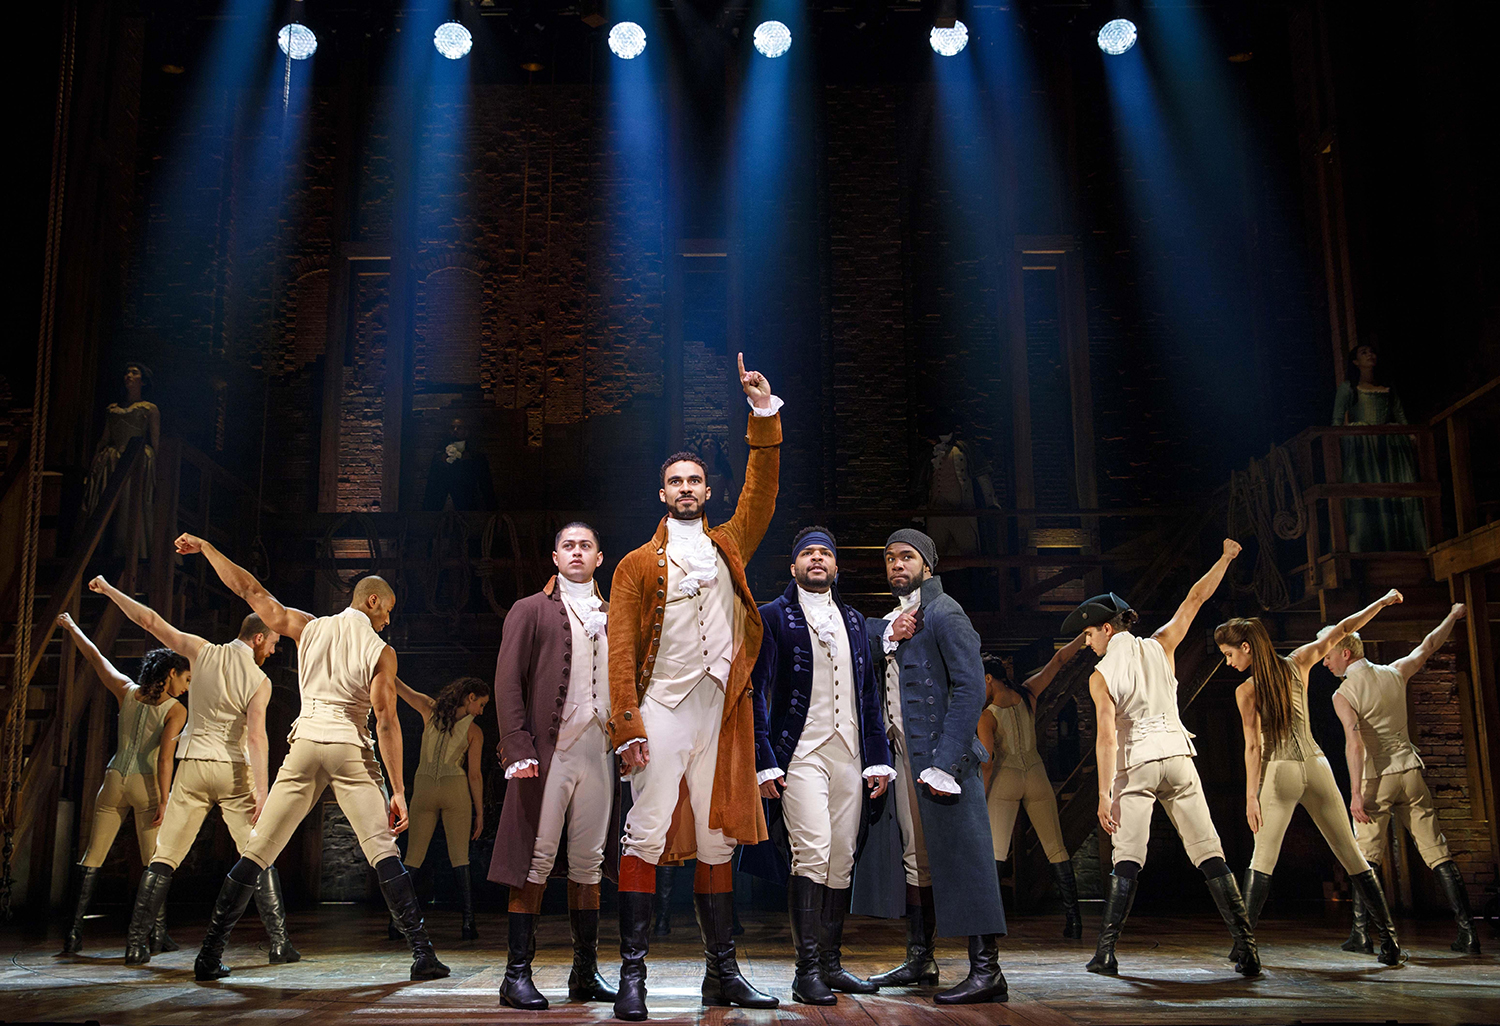 The musical Hamilton will be at the Kravis Center Jan. 28-Feb. 16. rr[Photo by Joan Marcus]